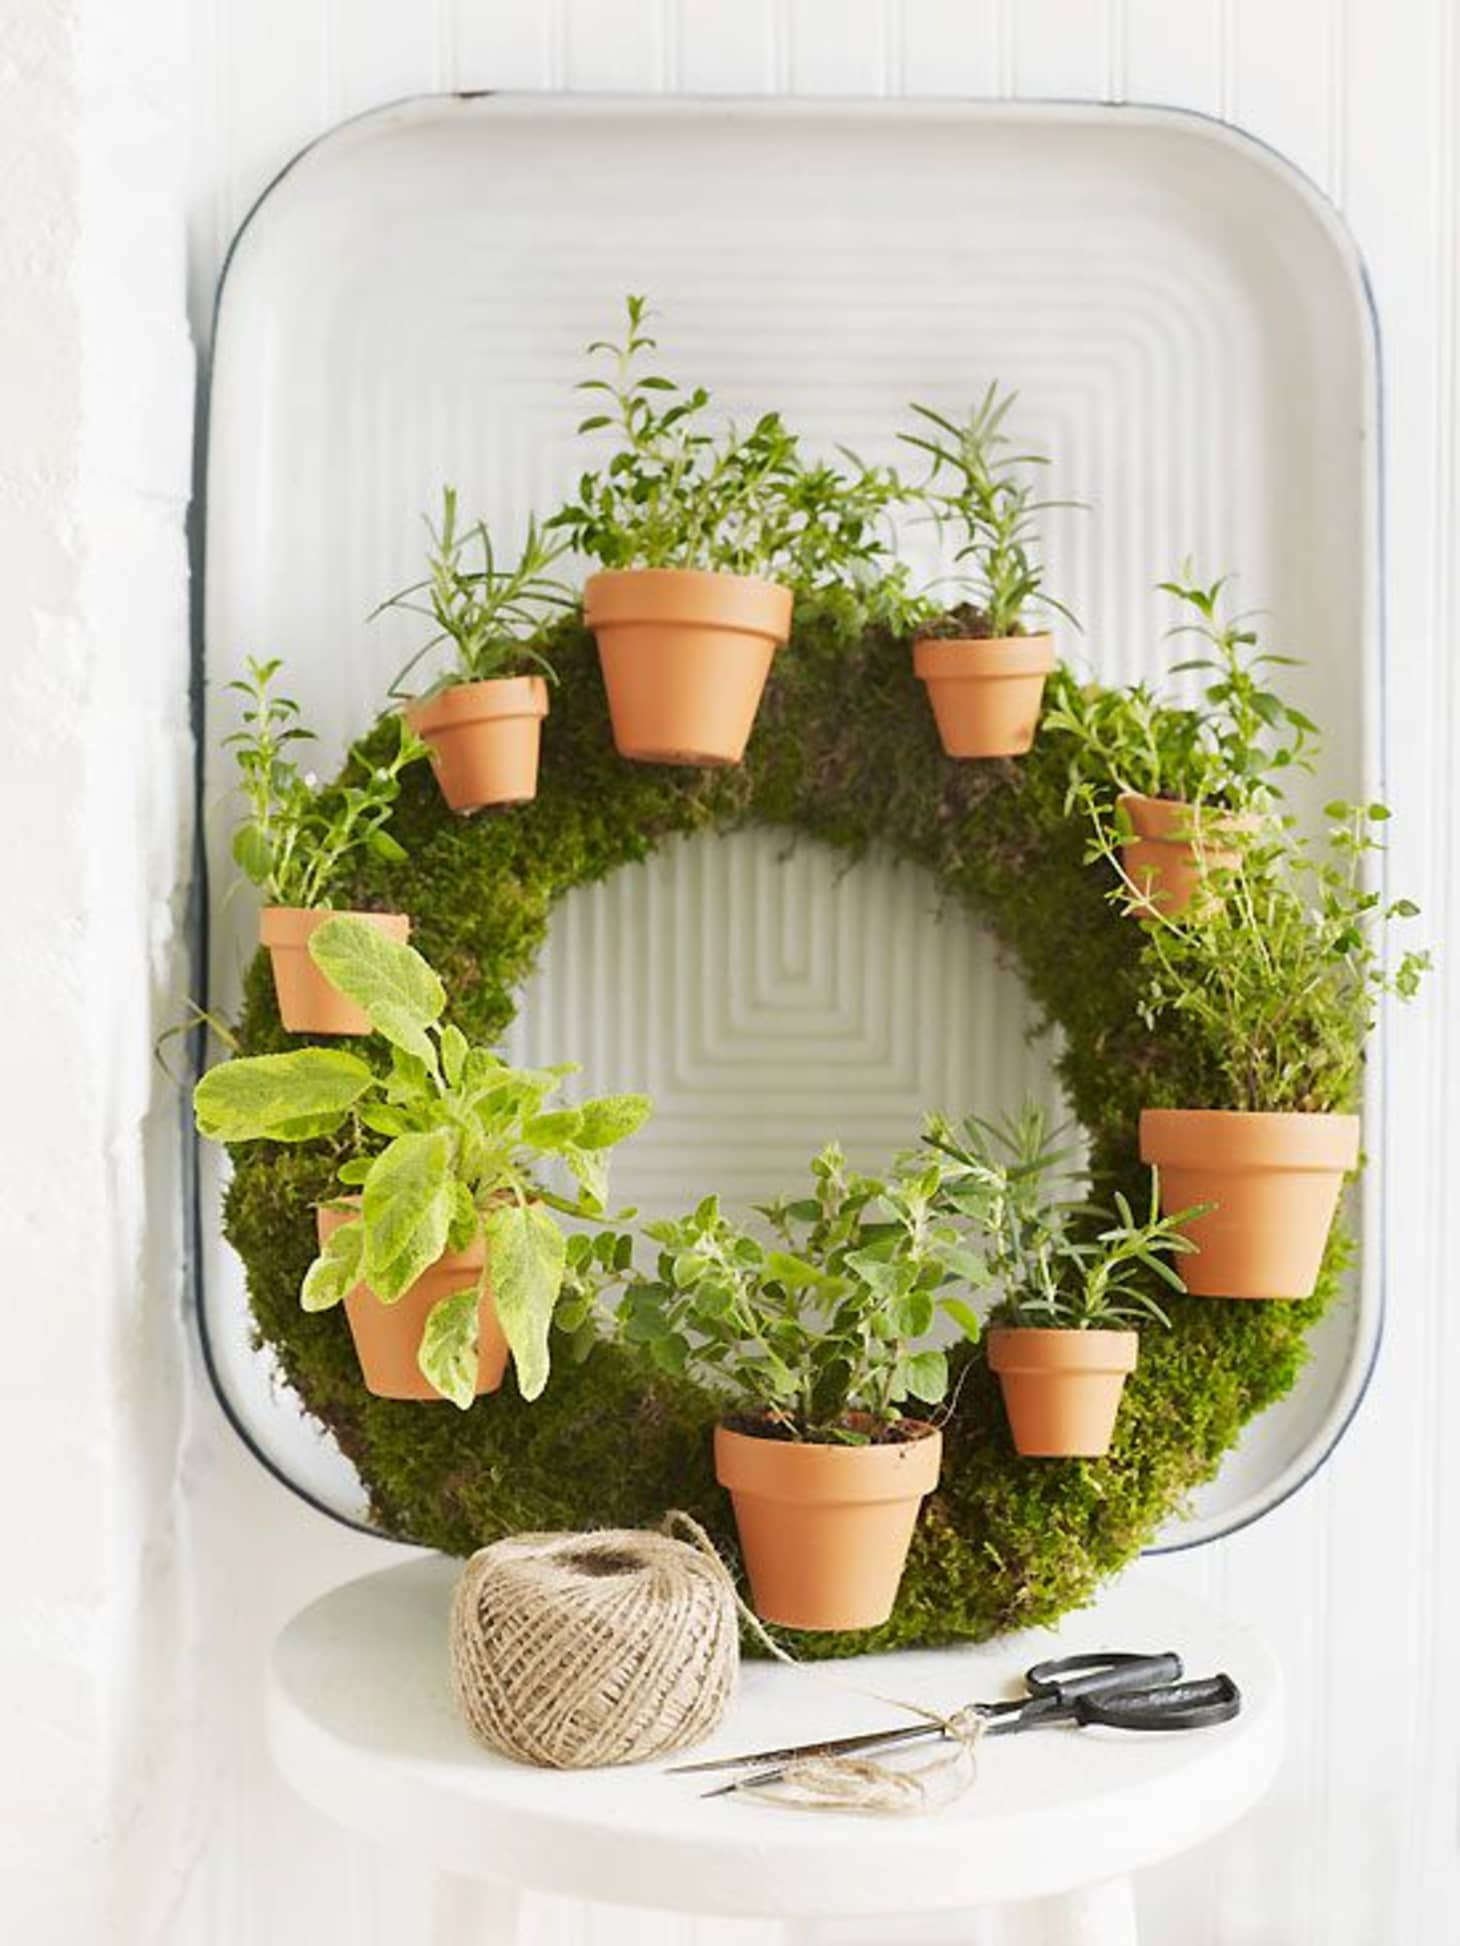 15 Indoor Garden Ideas for Wannabe Gardeners in Small ...